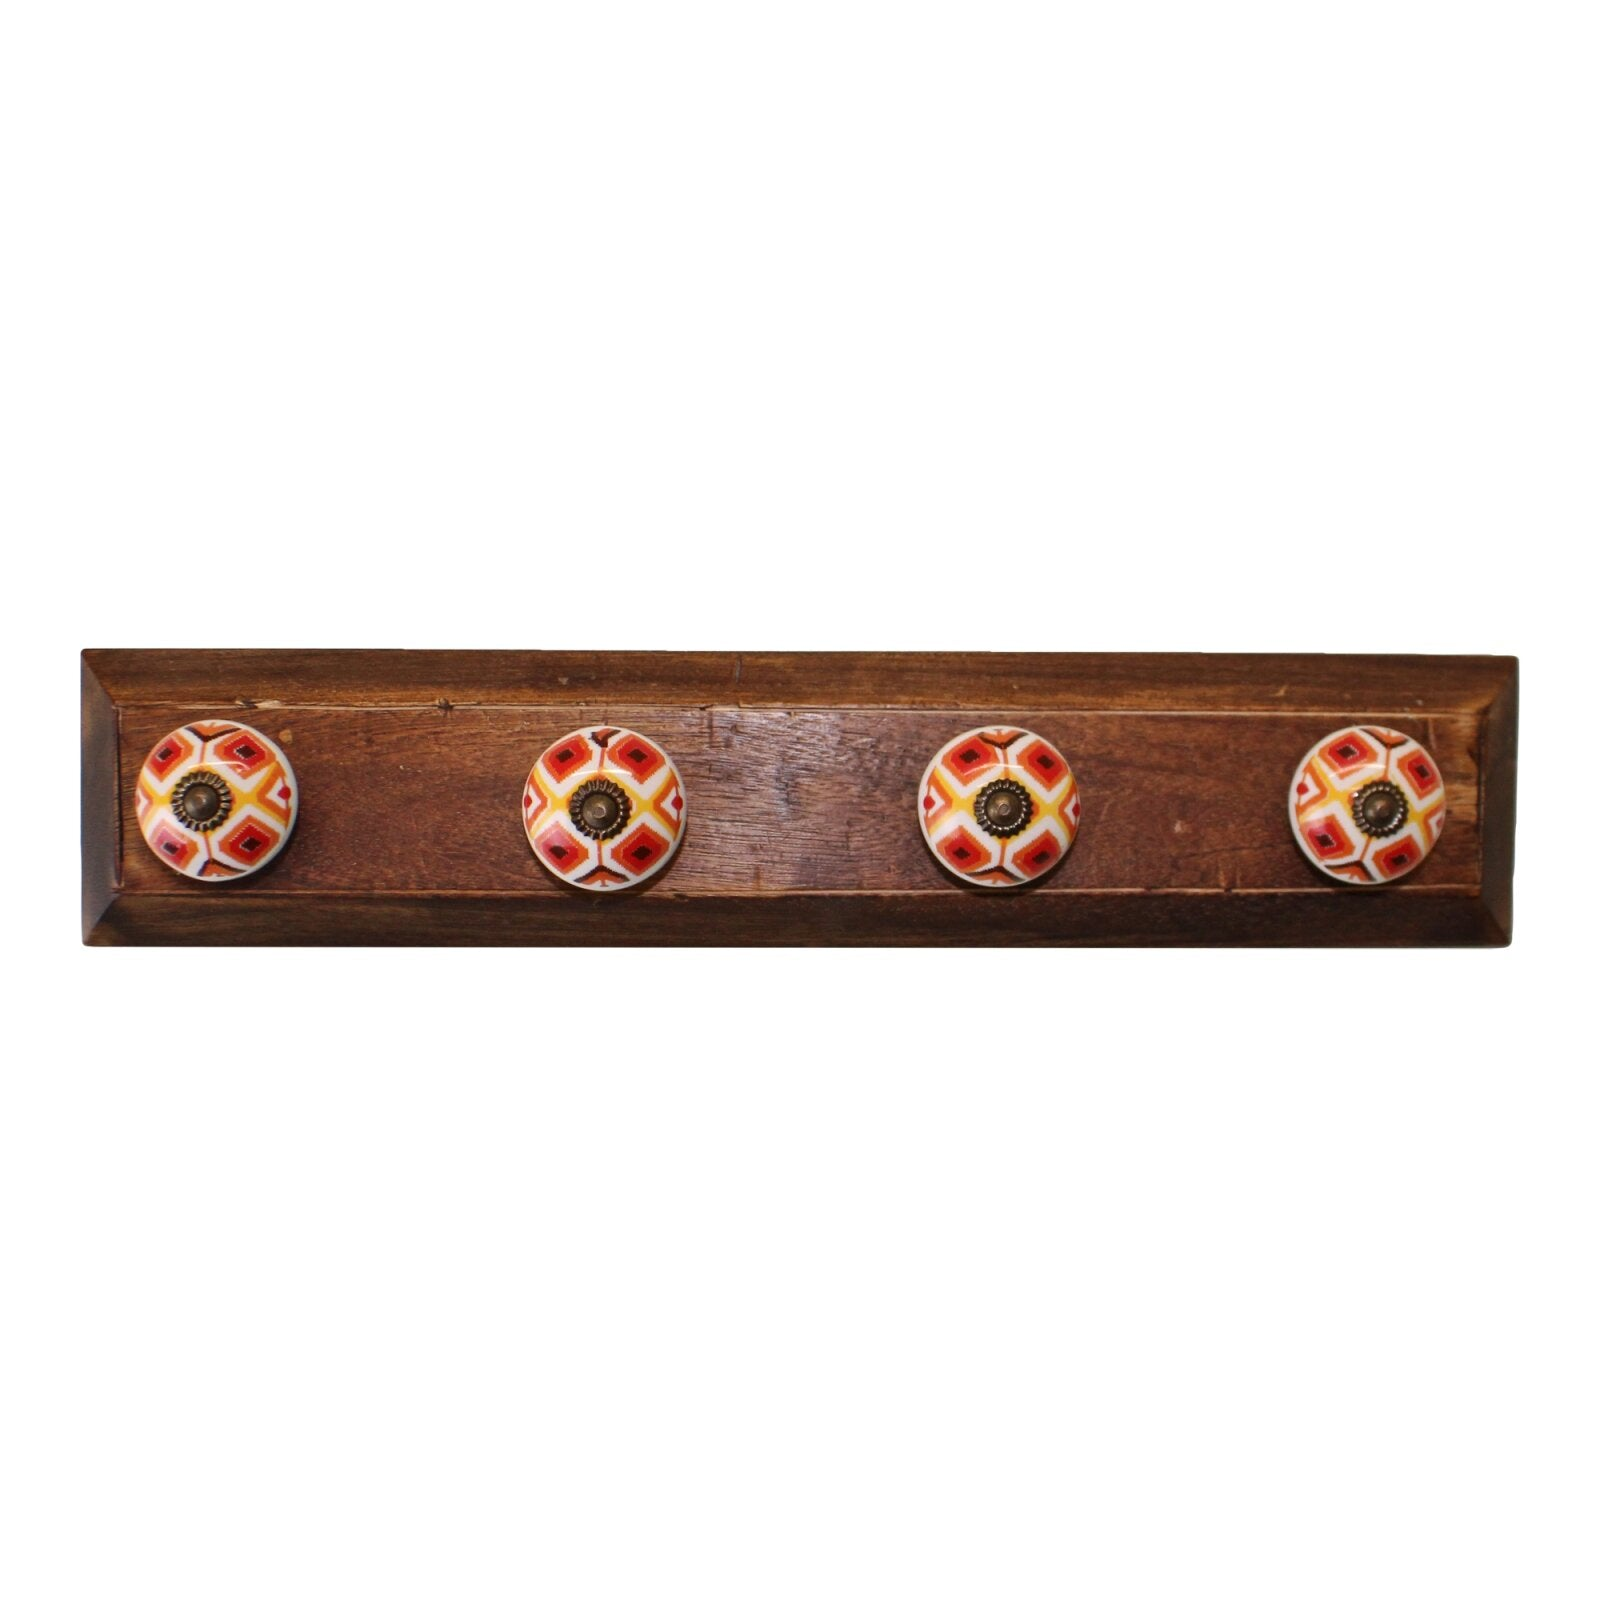 Set of 4 Kasbah Design Coat Hooks On Wooden Base, Clasps & Hooks by Low Cost Gifts